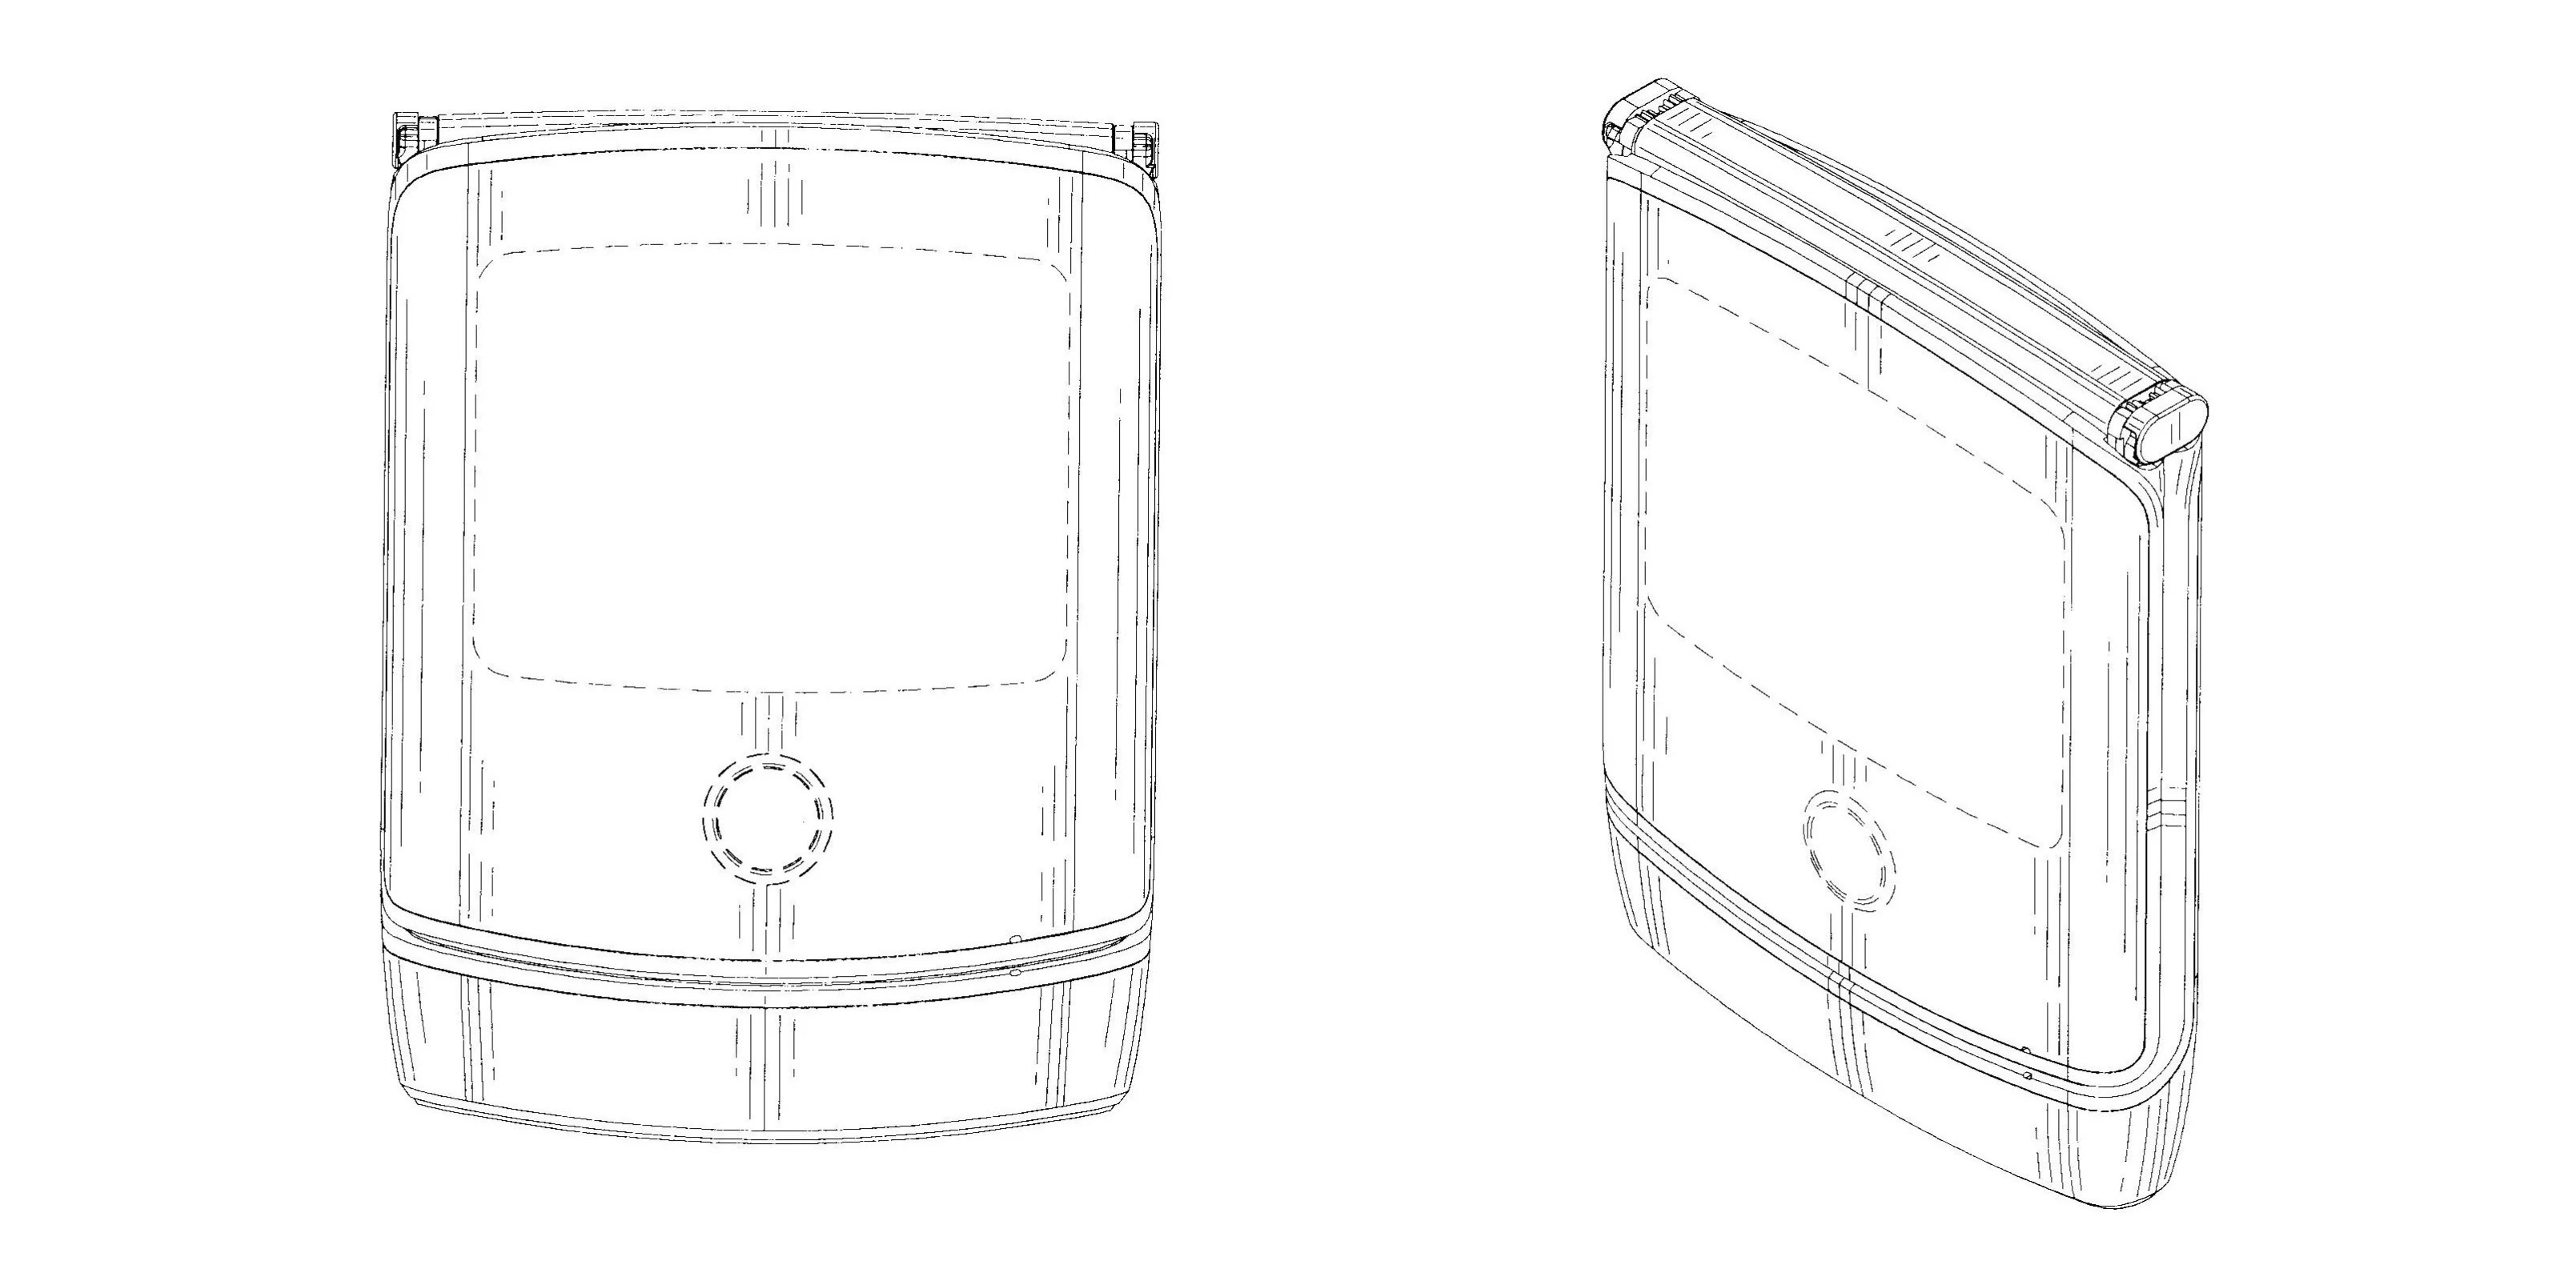 The foldable Motorola RAZR could support these unique